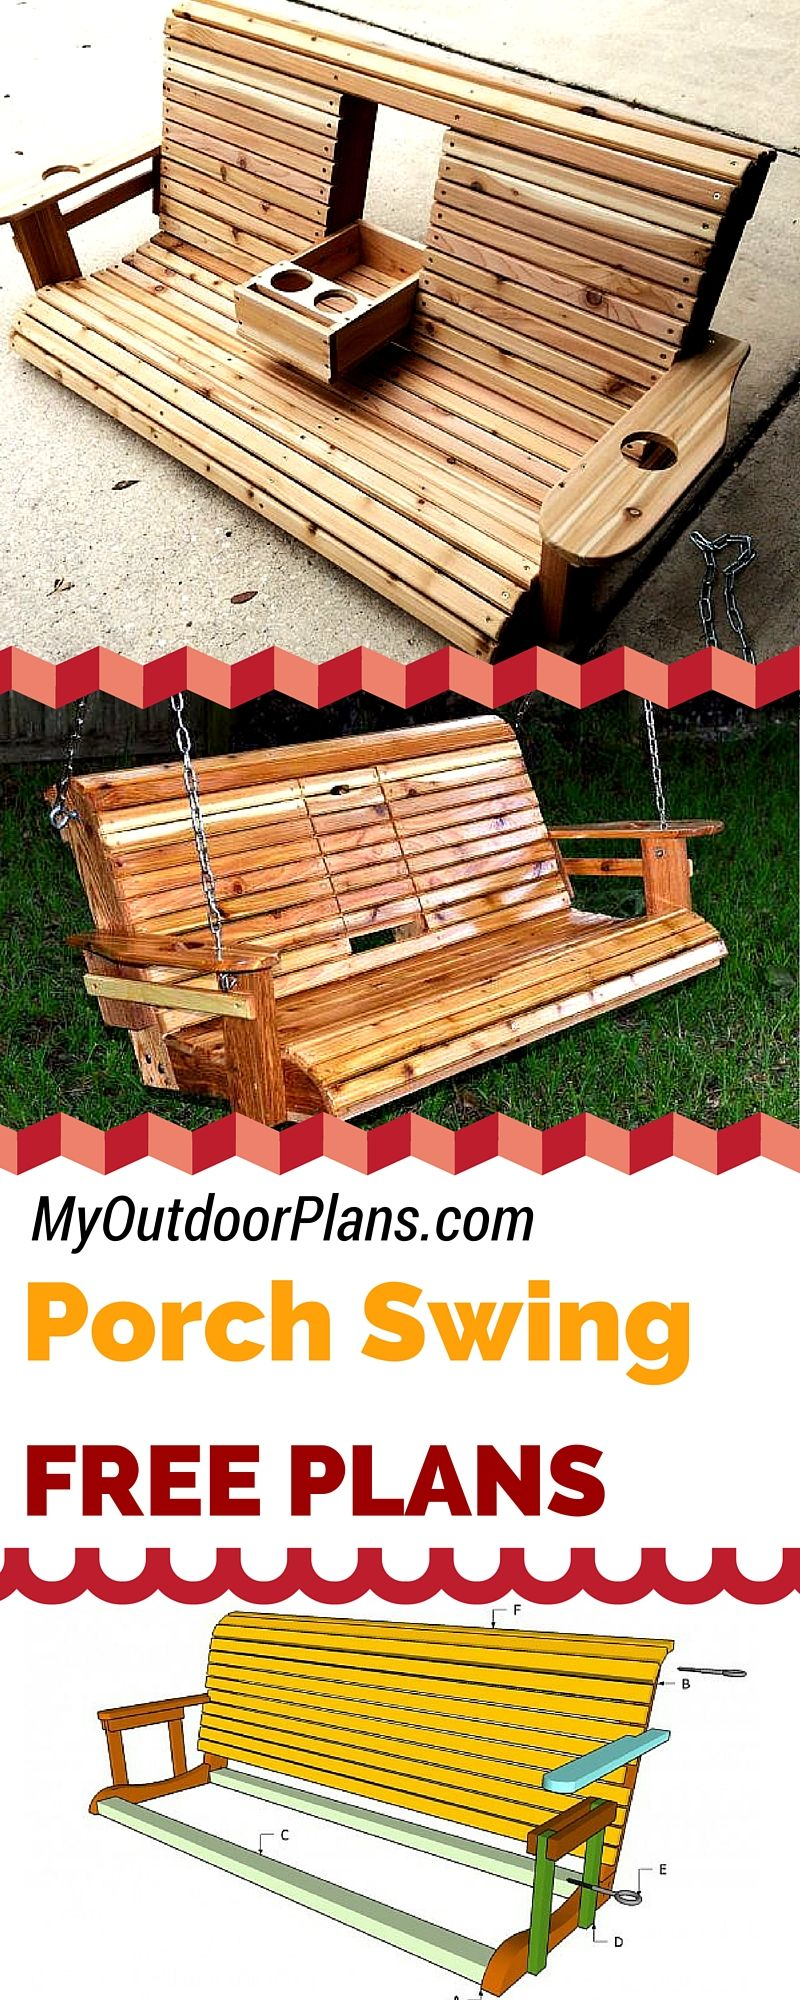 How To Build A Porch Swing Free Porch Swing Plans Learn How To Build A Porch Swing With My